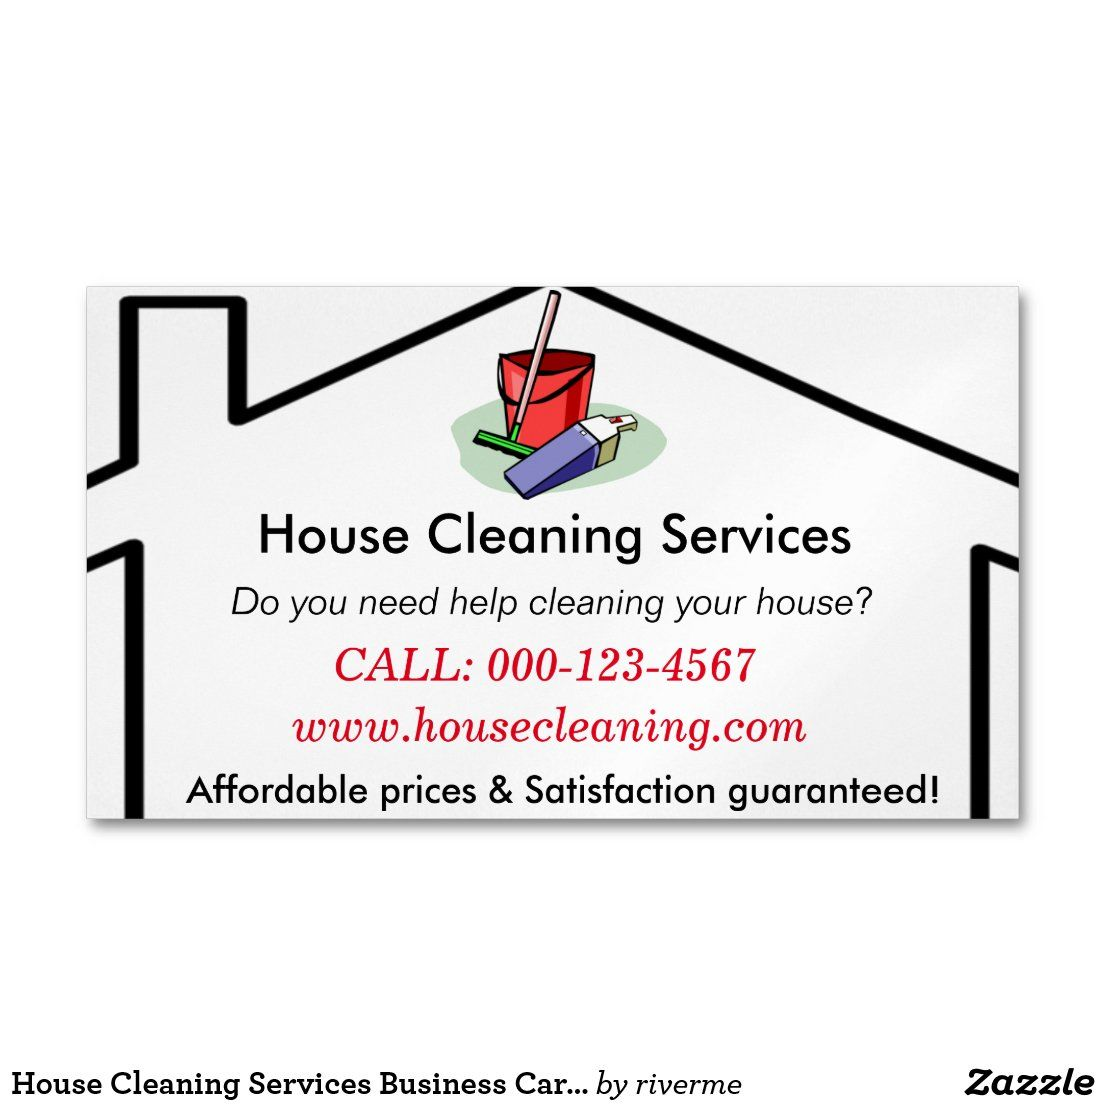 House Cleaning Services Business Card Template Zazzle Com Cleaning Business Cards Free Business Card Templates Business Card Template